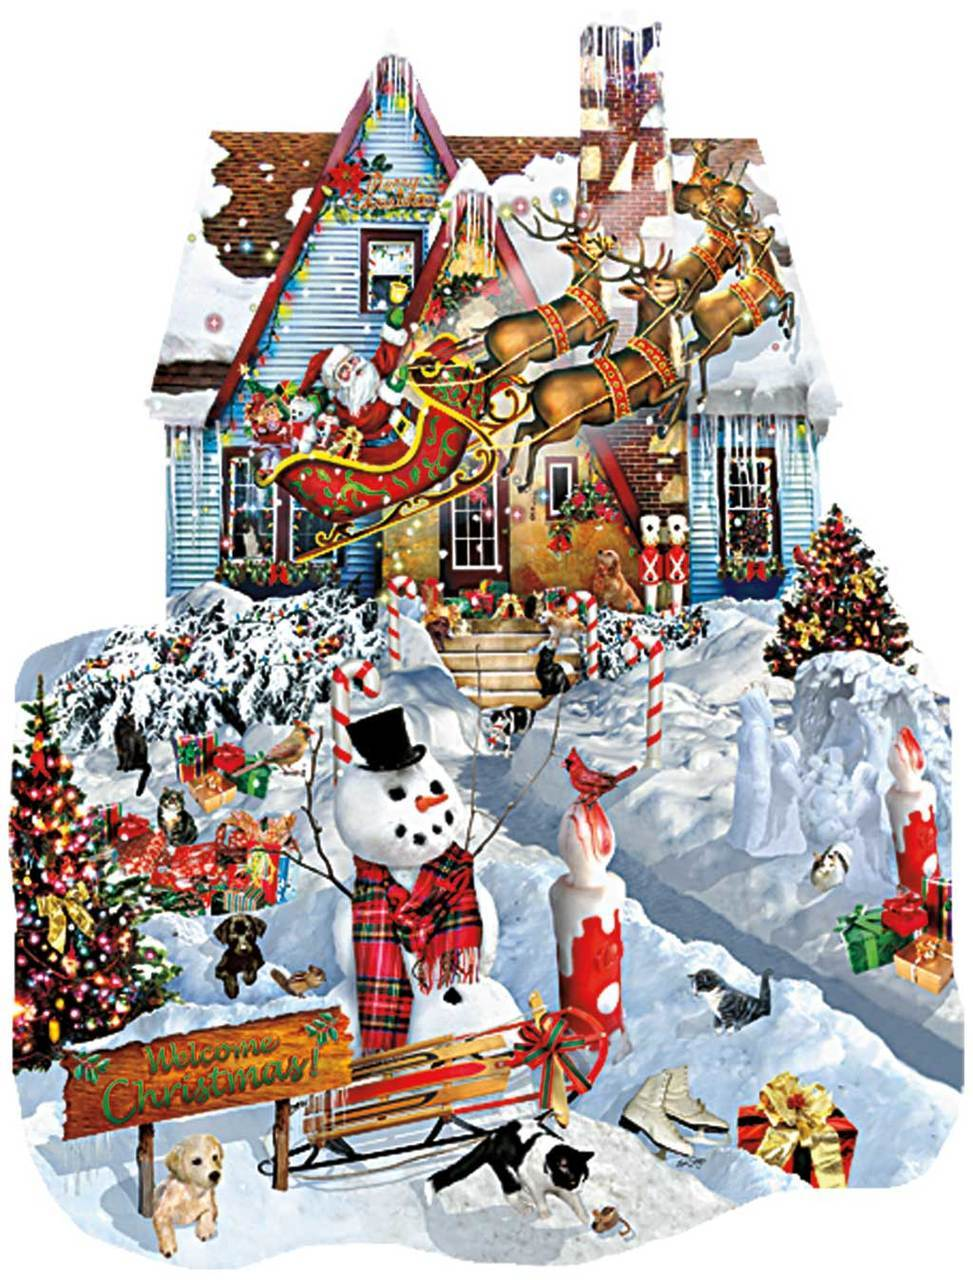 sunsout-lori-schory-christmas-at-our-house-1000-teile-puzzle-sunsout-95539